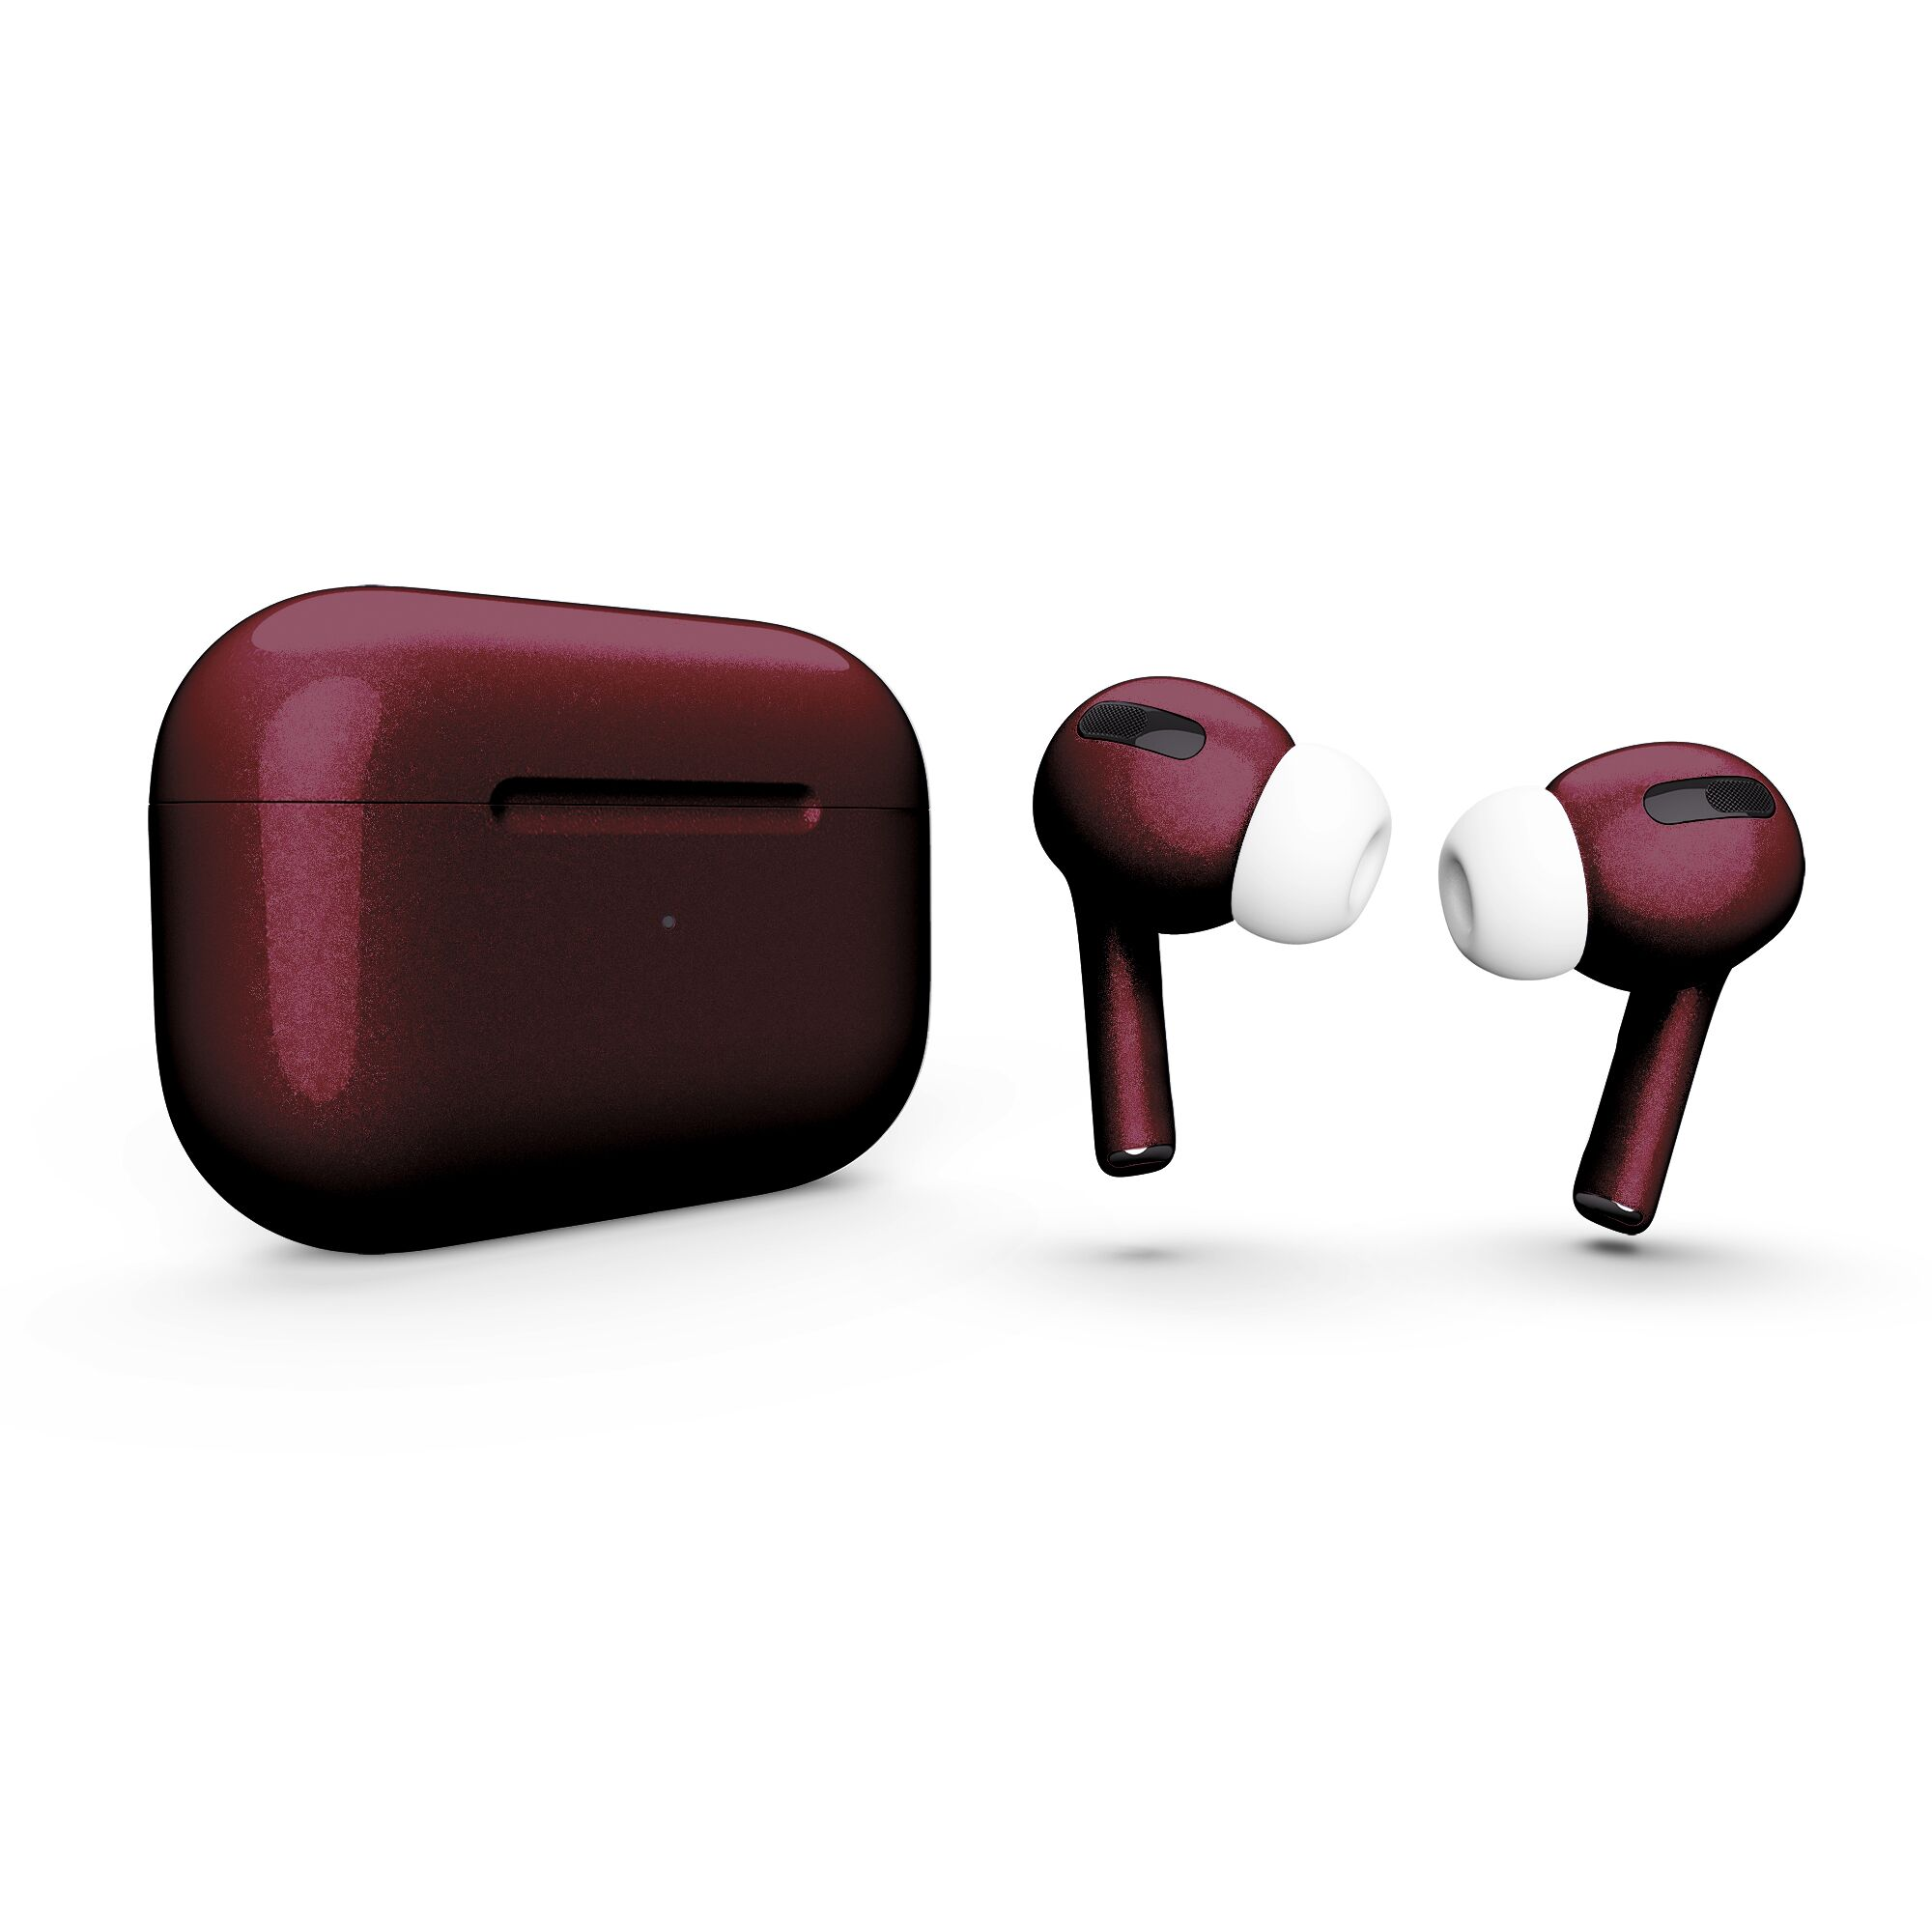 Наушники Apple AirPods Pro Metallic Cherry Gloss (MWP22)